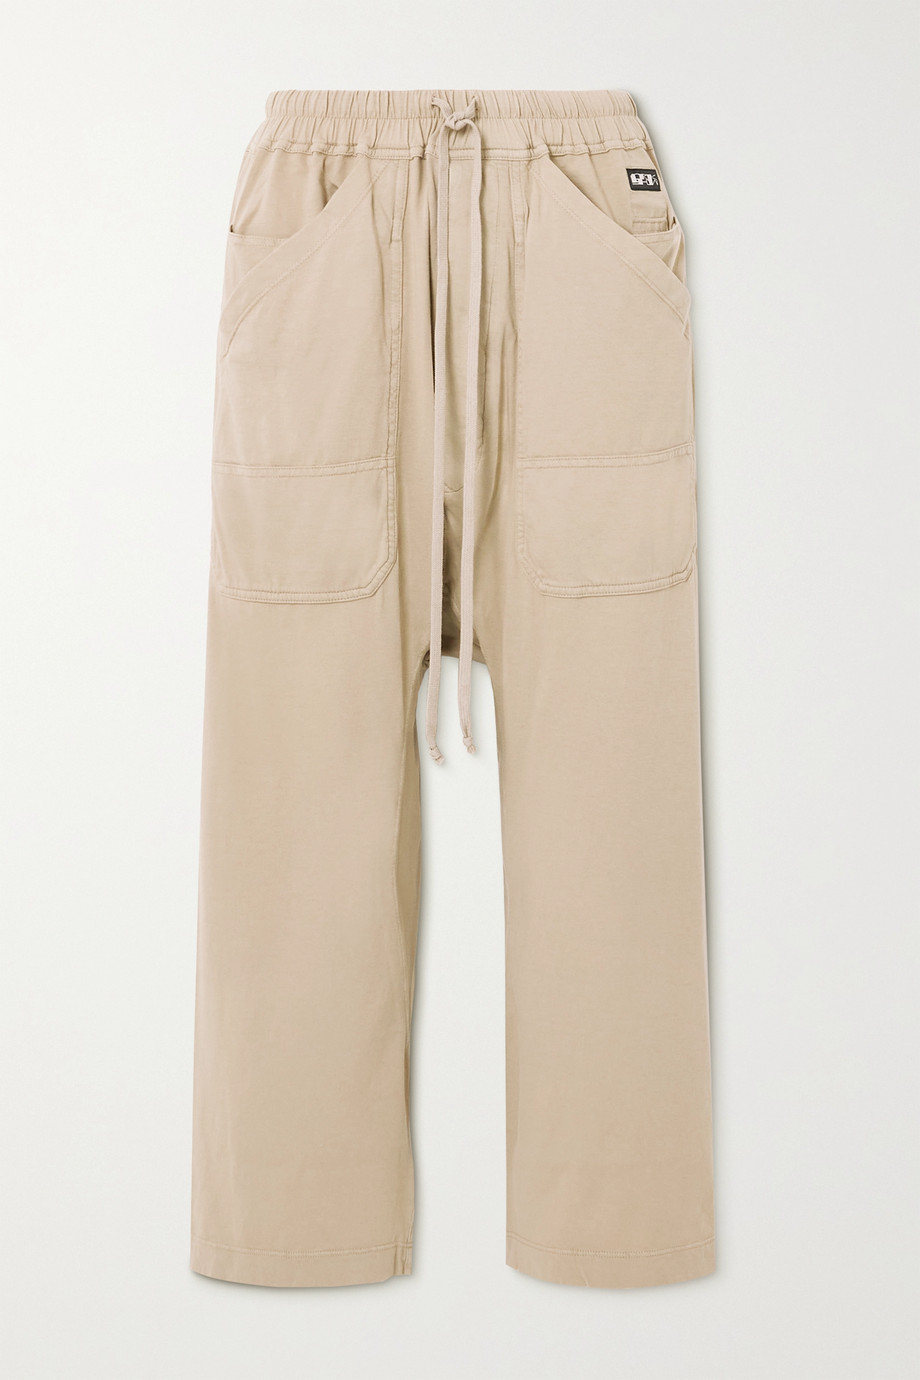 RICK OWENS Appliquéd cotton-jersey track pants